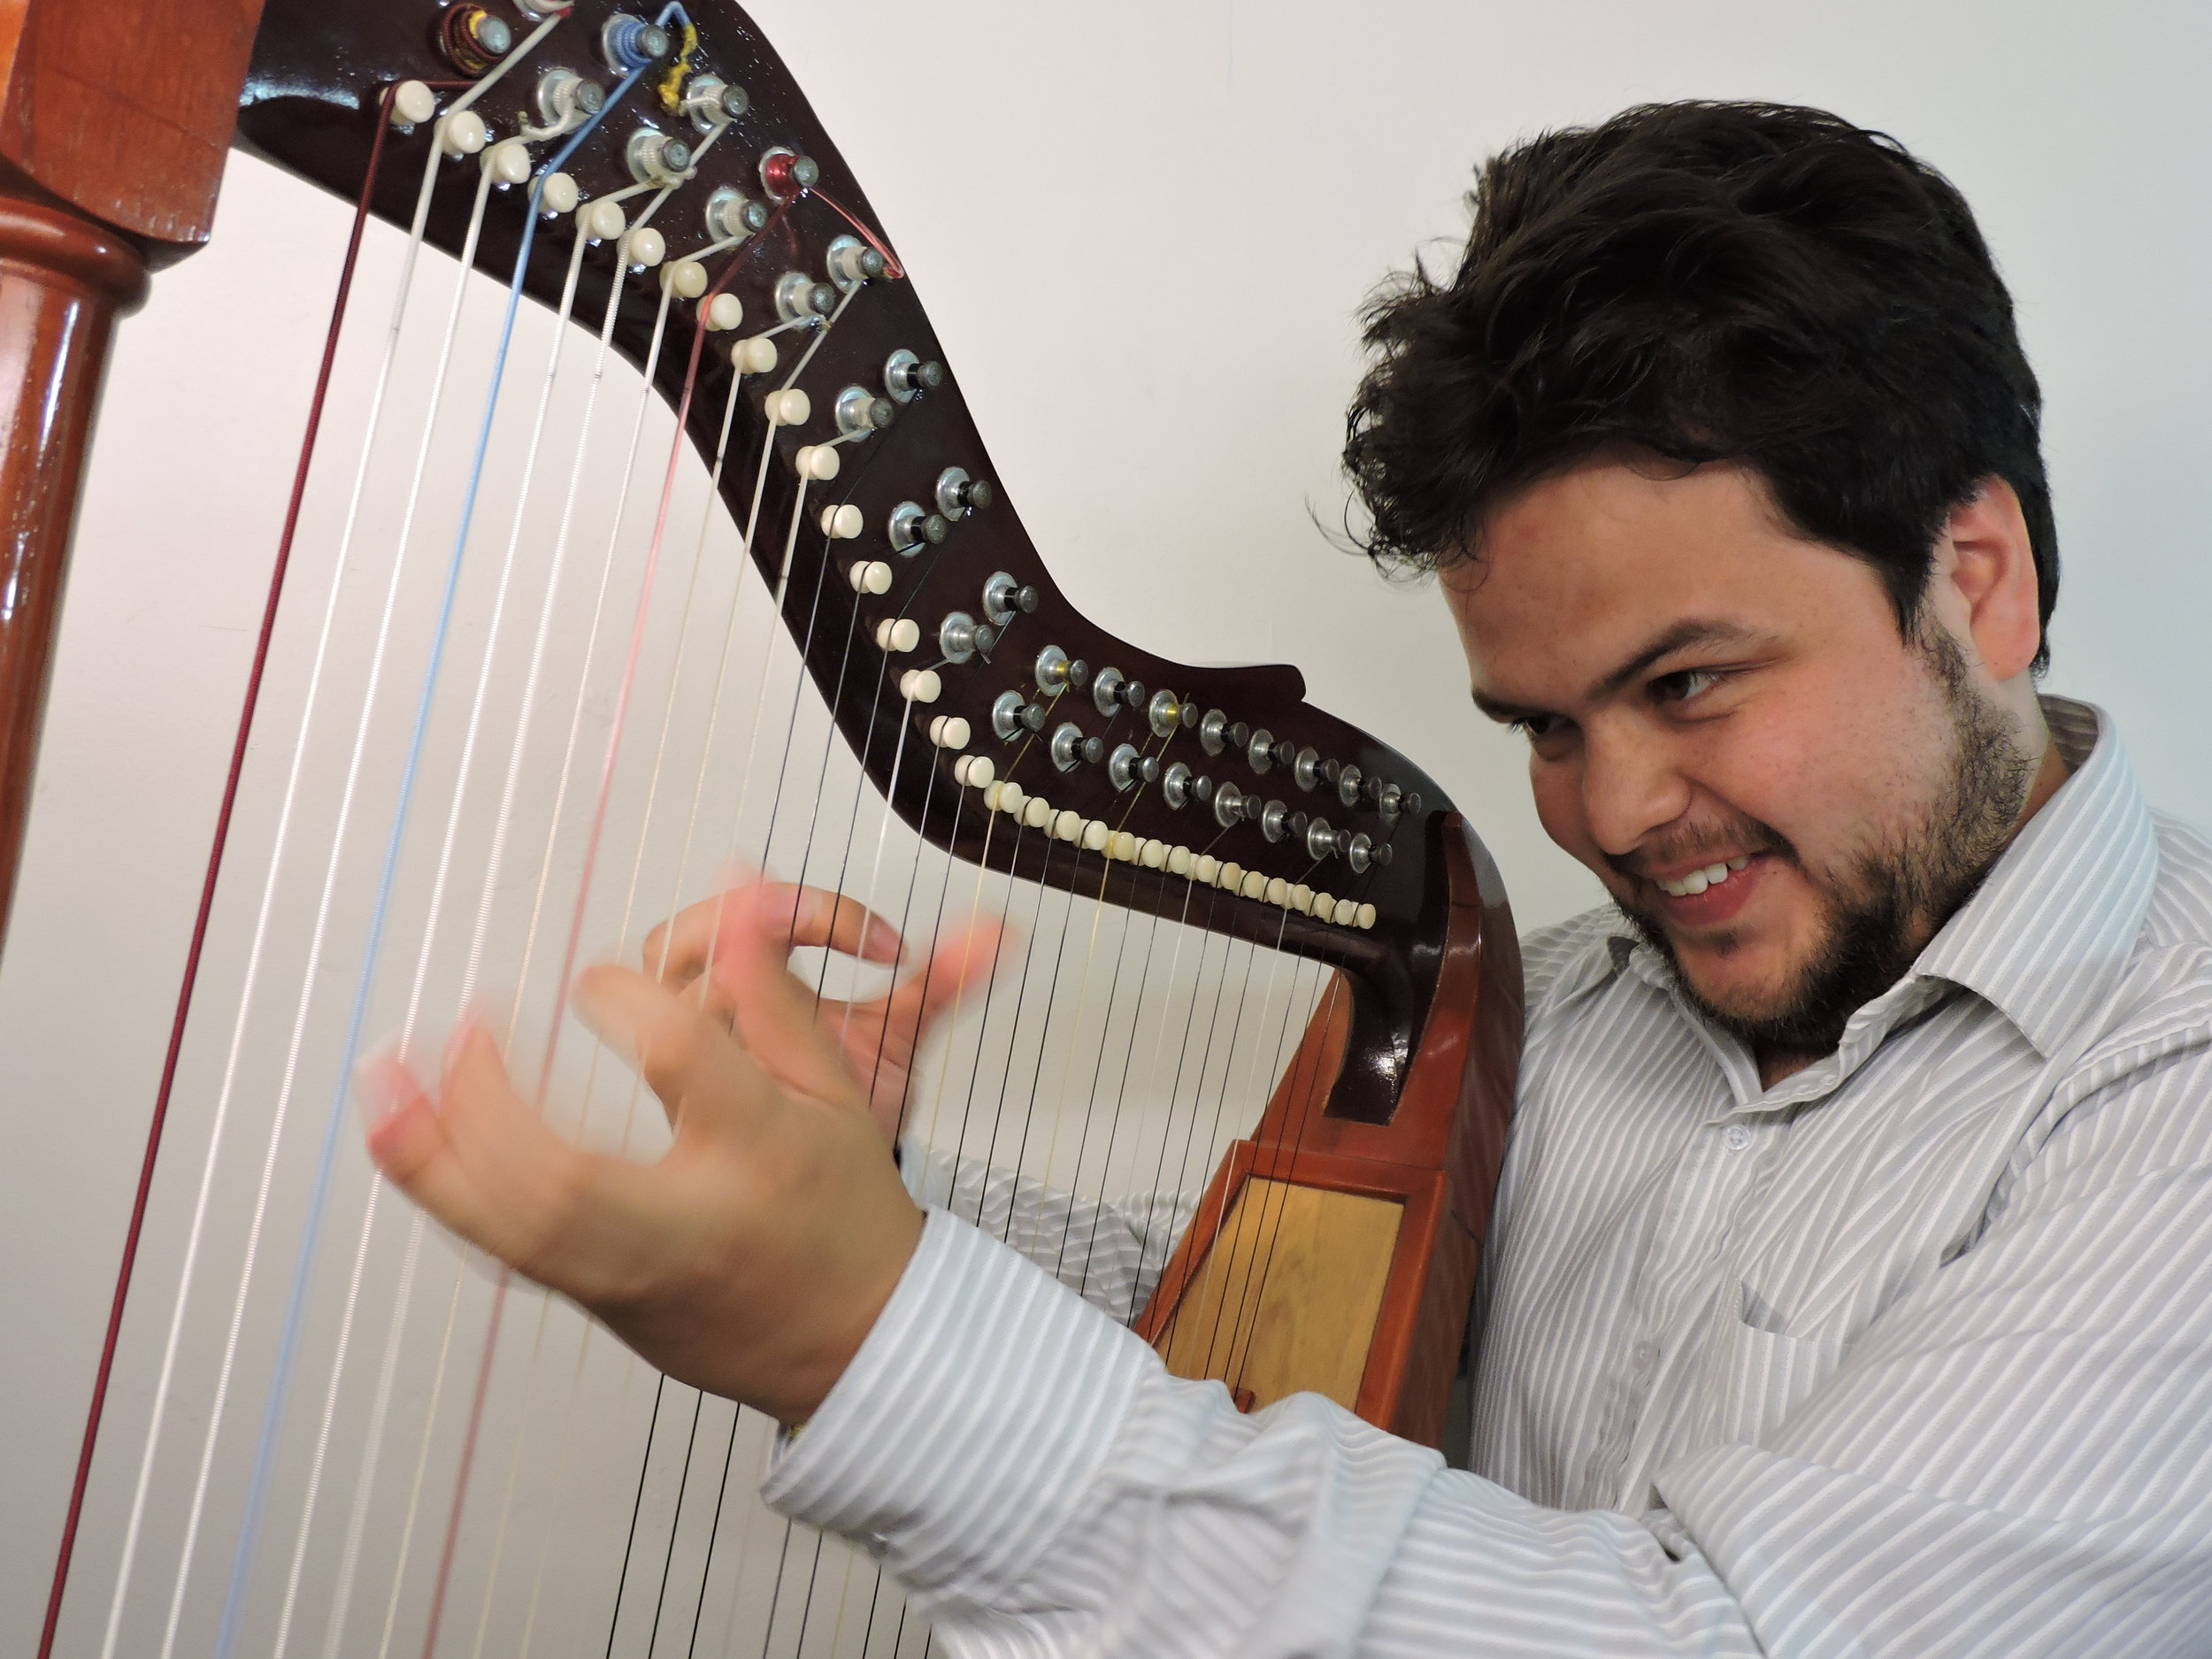 Nico Castañeda is rooted in the music of his native Colombia with a classical music education in Bogotá and Jazz Composition at the fabled Berklee College of music in Boston.